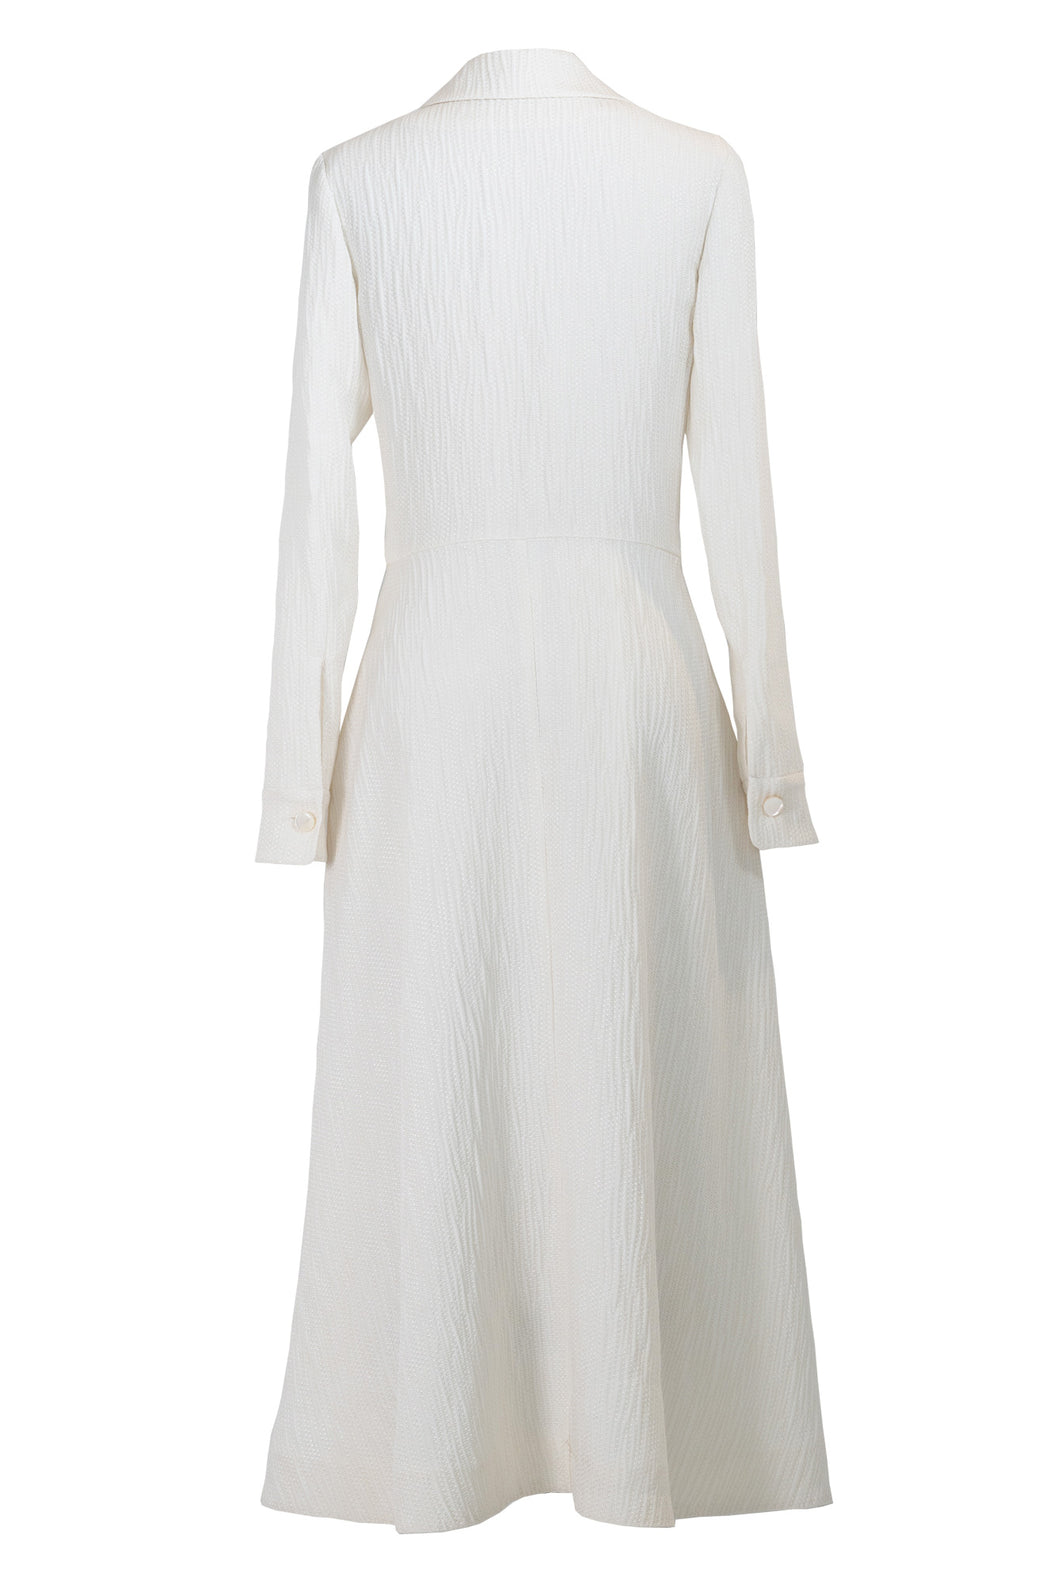 White Long Sleeve Dress In Silk